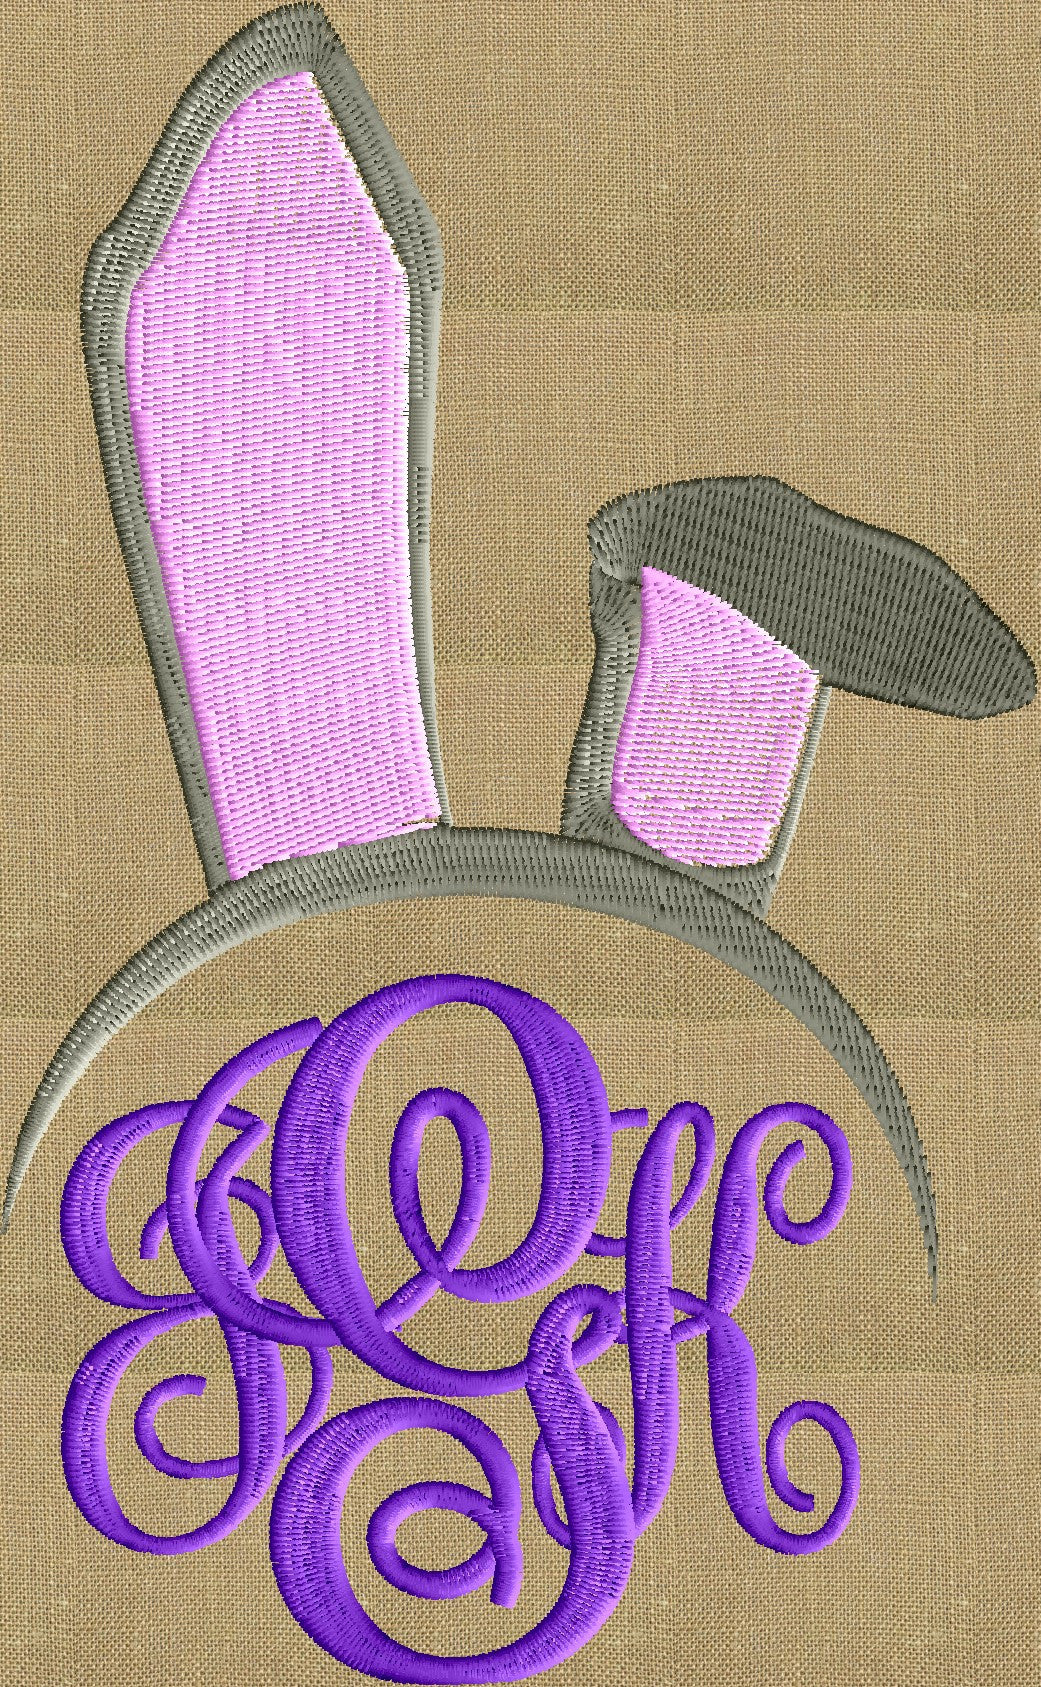 Bunny Ears Font Frame Monogram Design -Font not included - EMBROIDERY DESIGN FILE